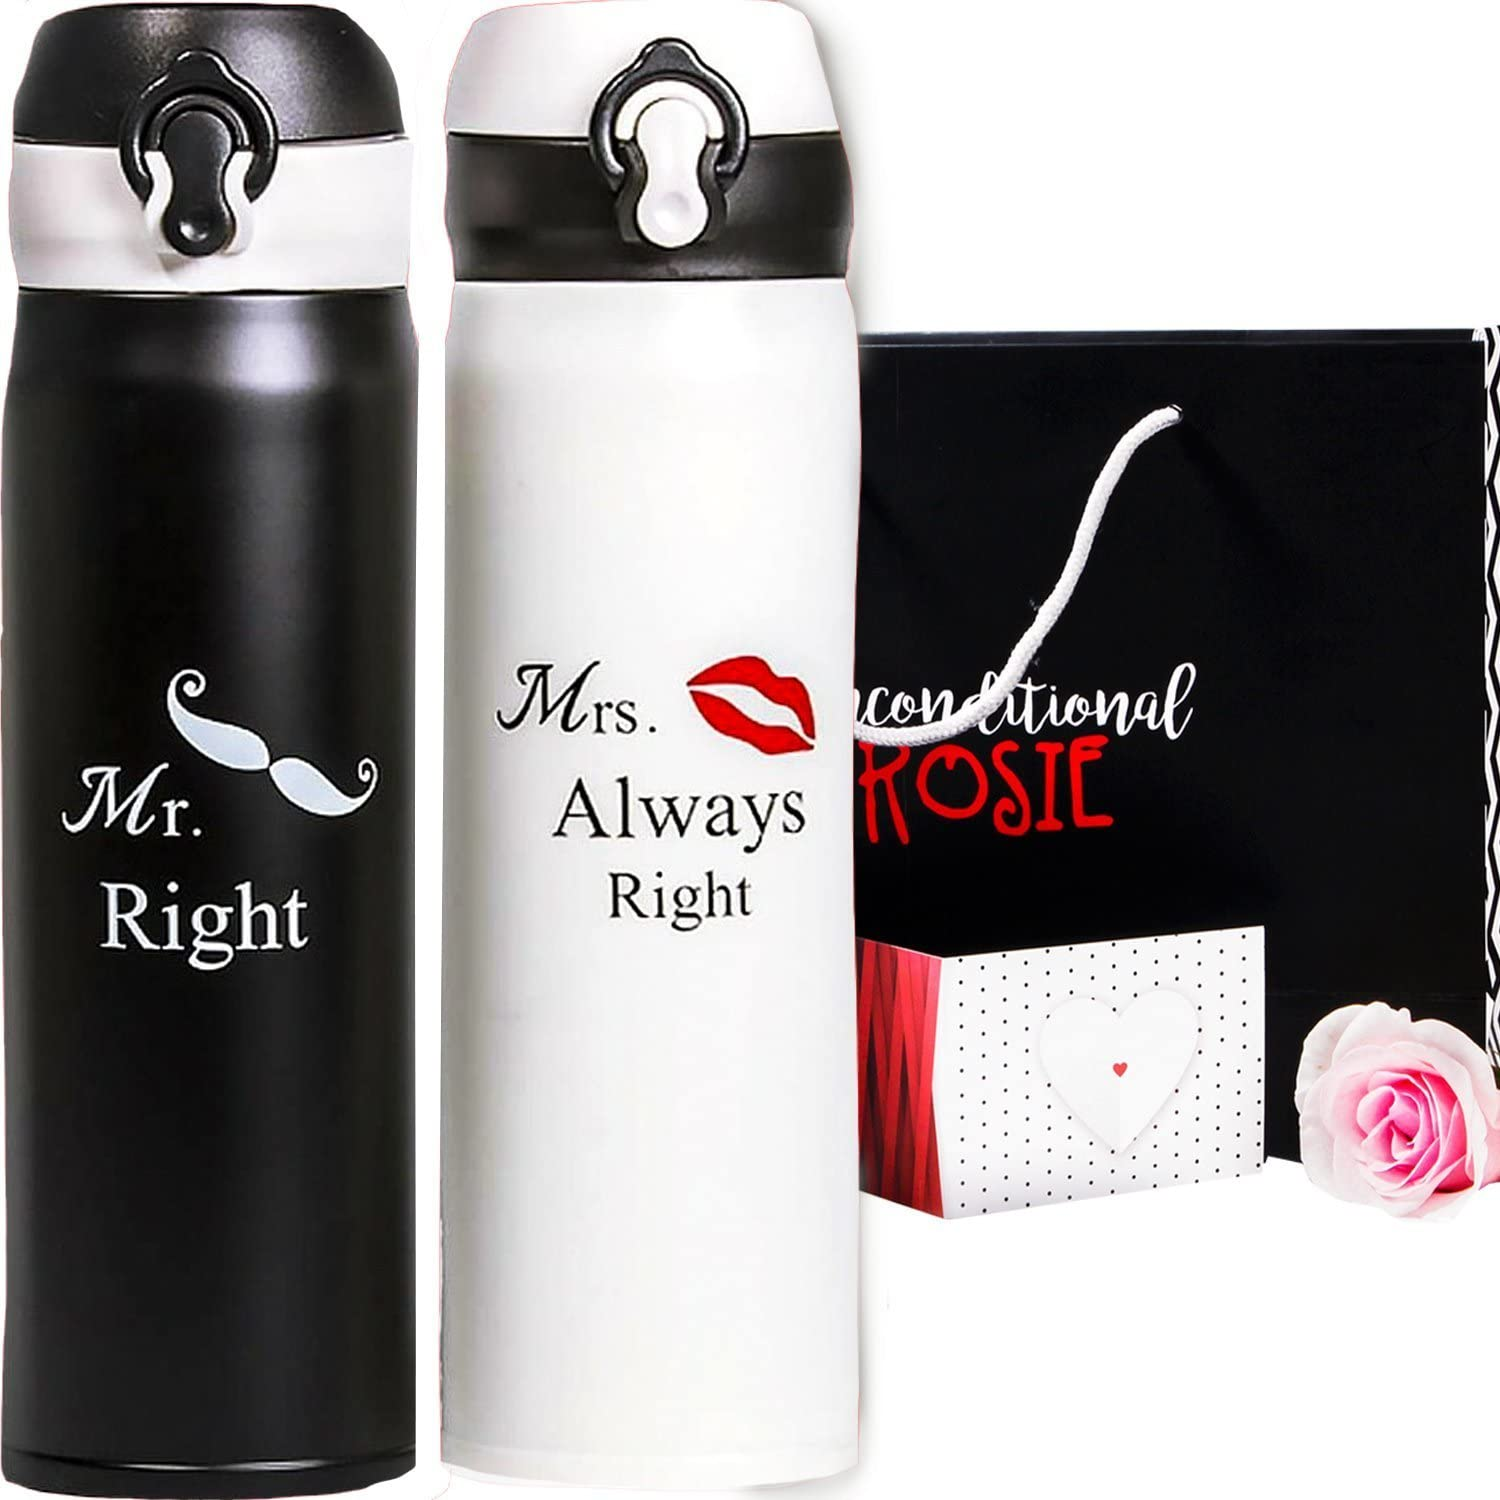 Matching Stainless Steel Flasks